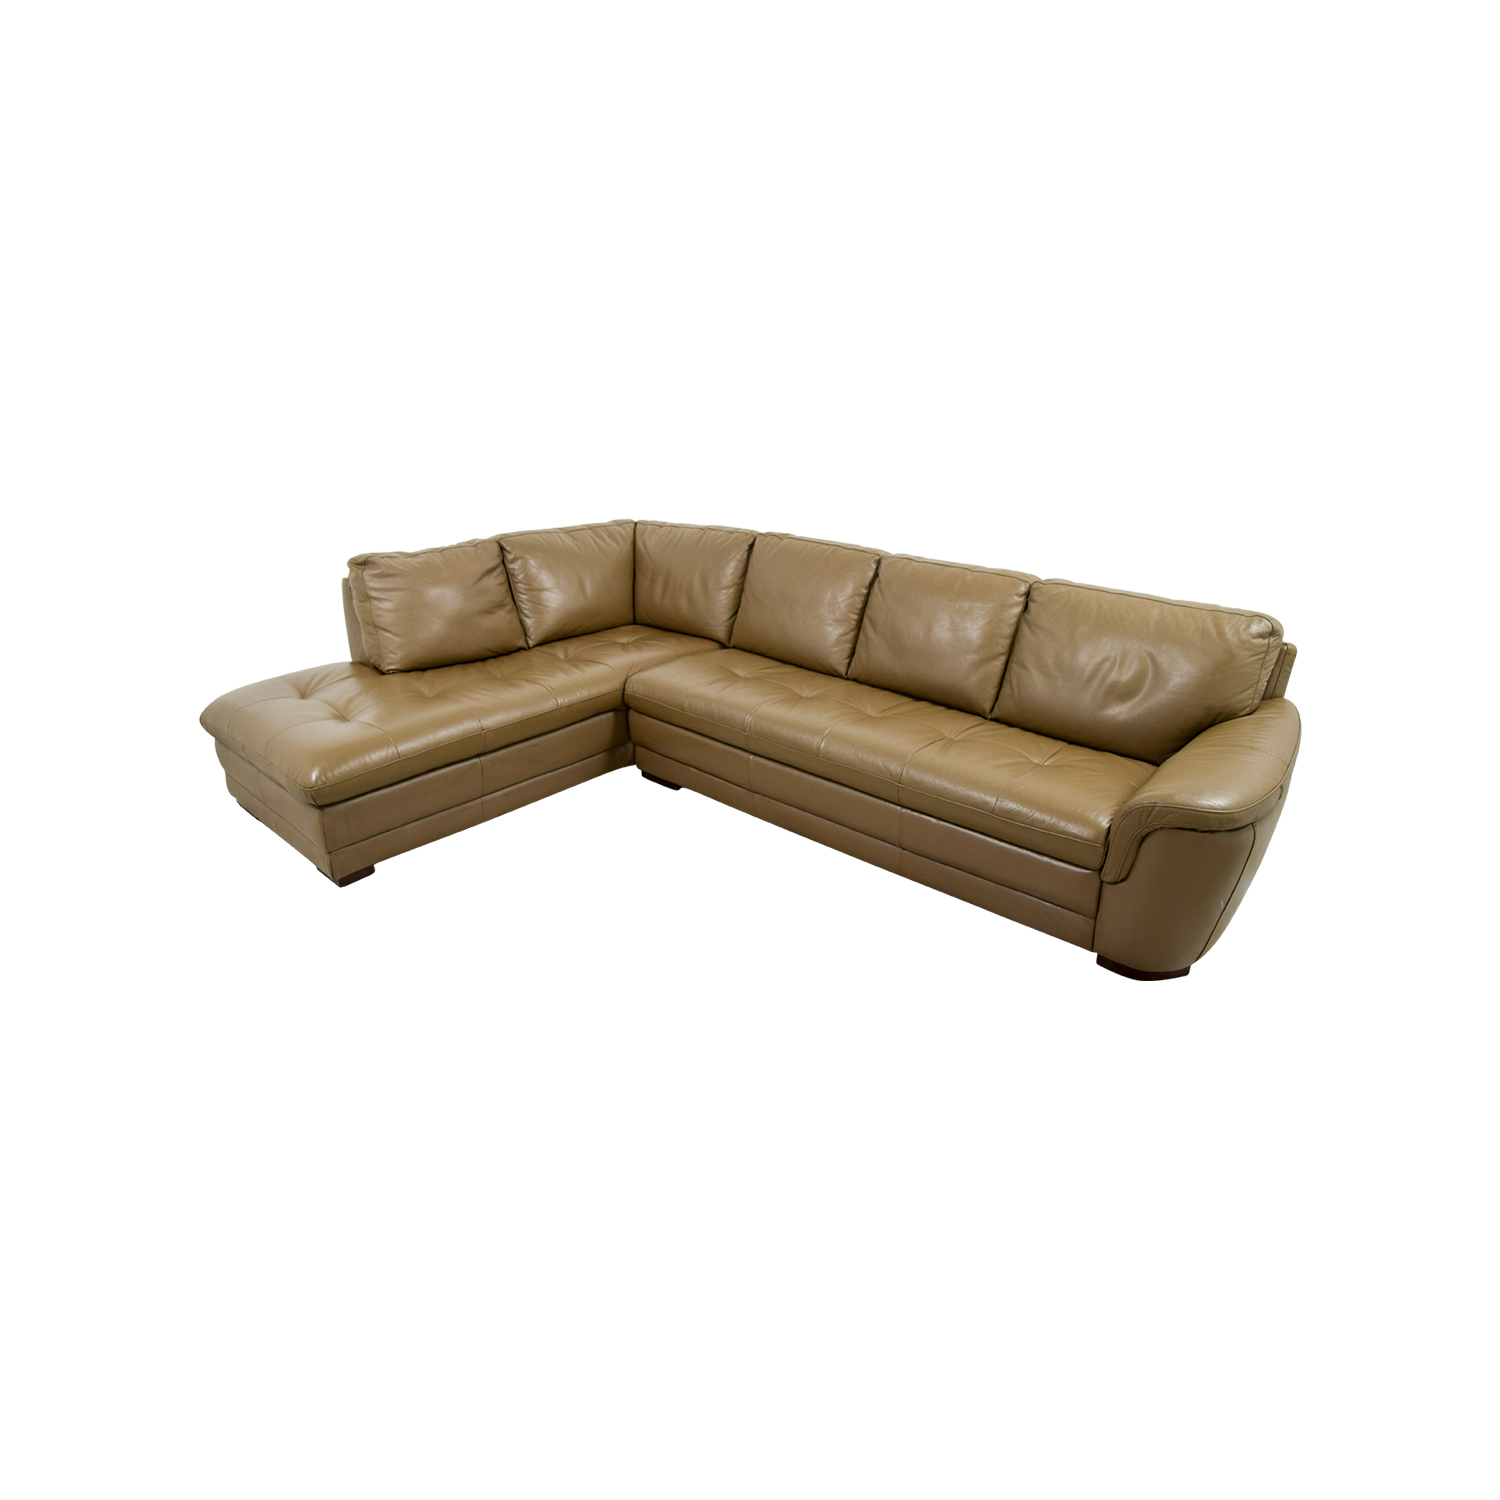 Raymour & Flanigan Raymour & Flanigan Garrison Tufted Leather Sectional used